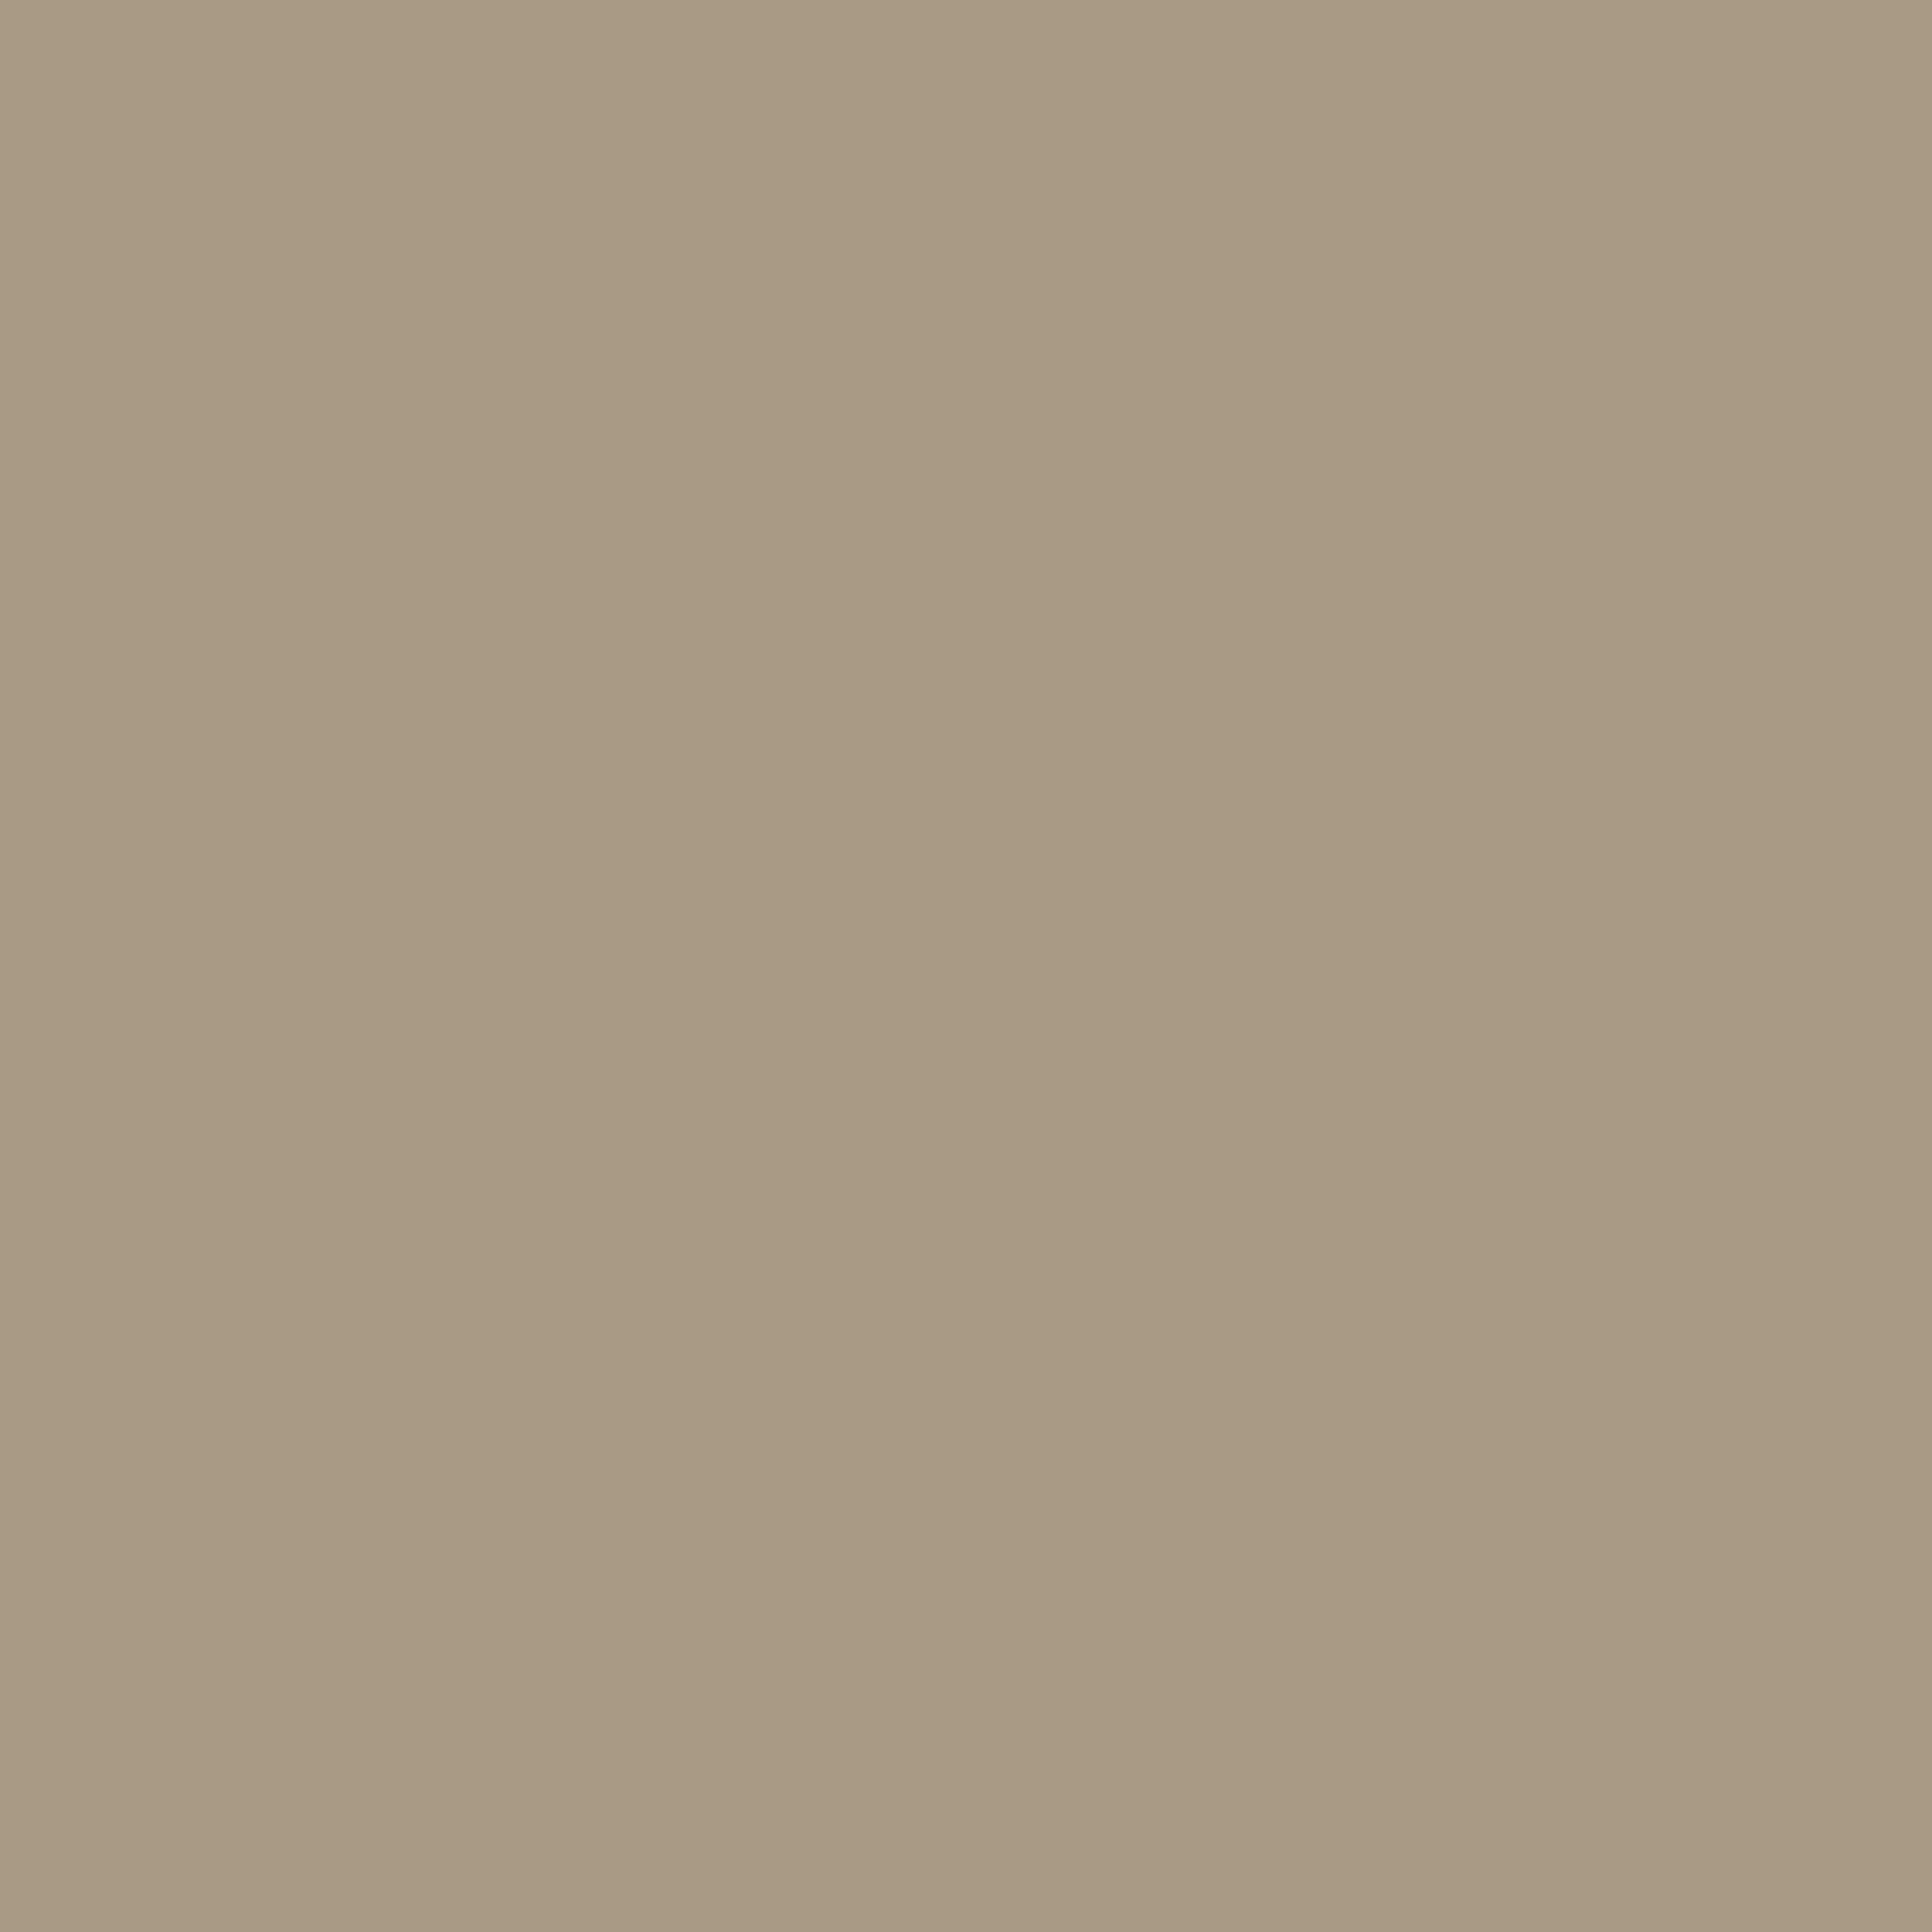 2732x2732 Grullo Solid Color Background